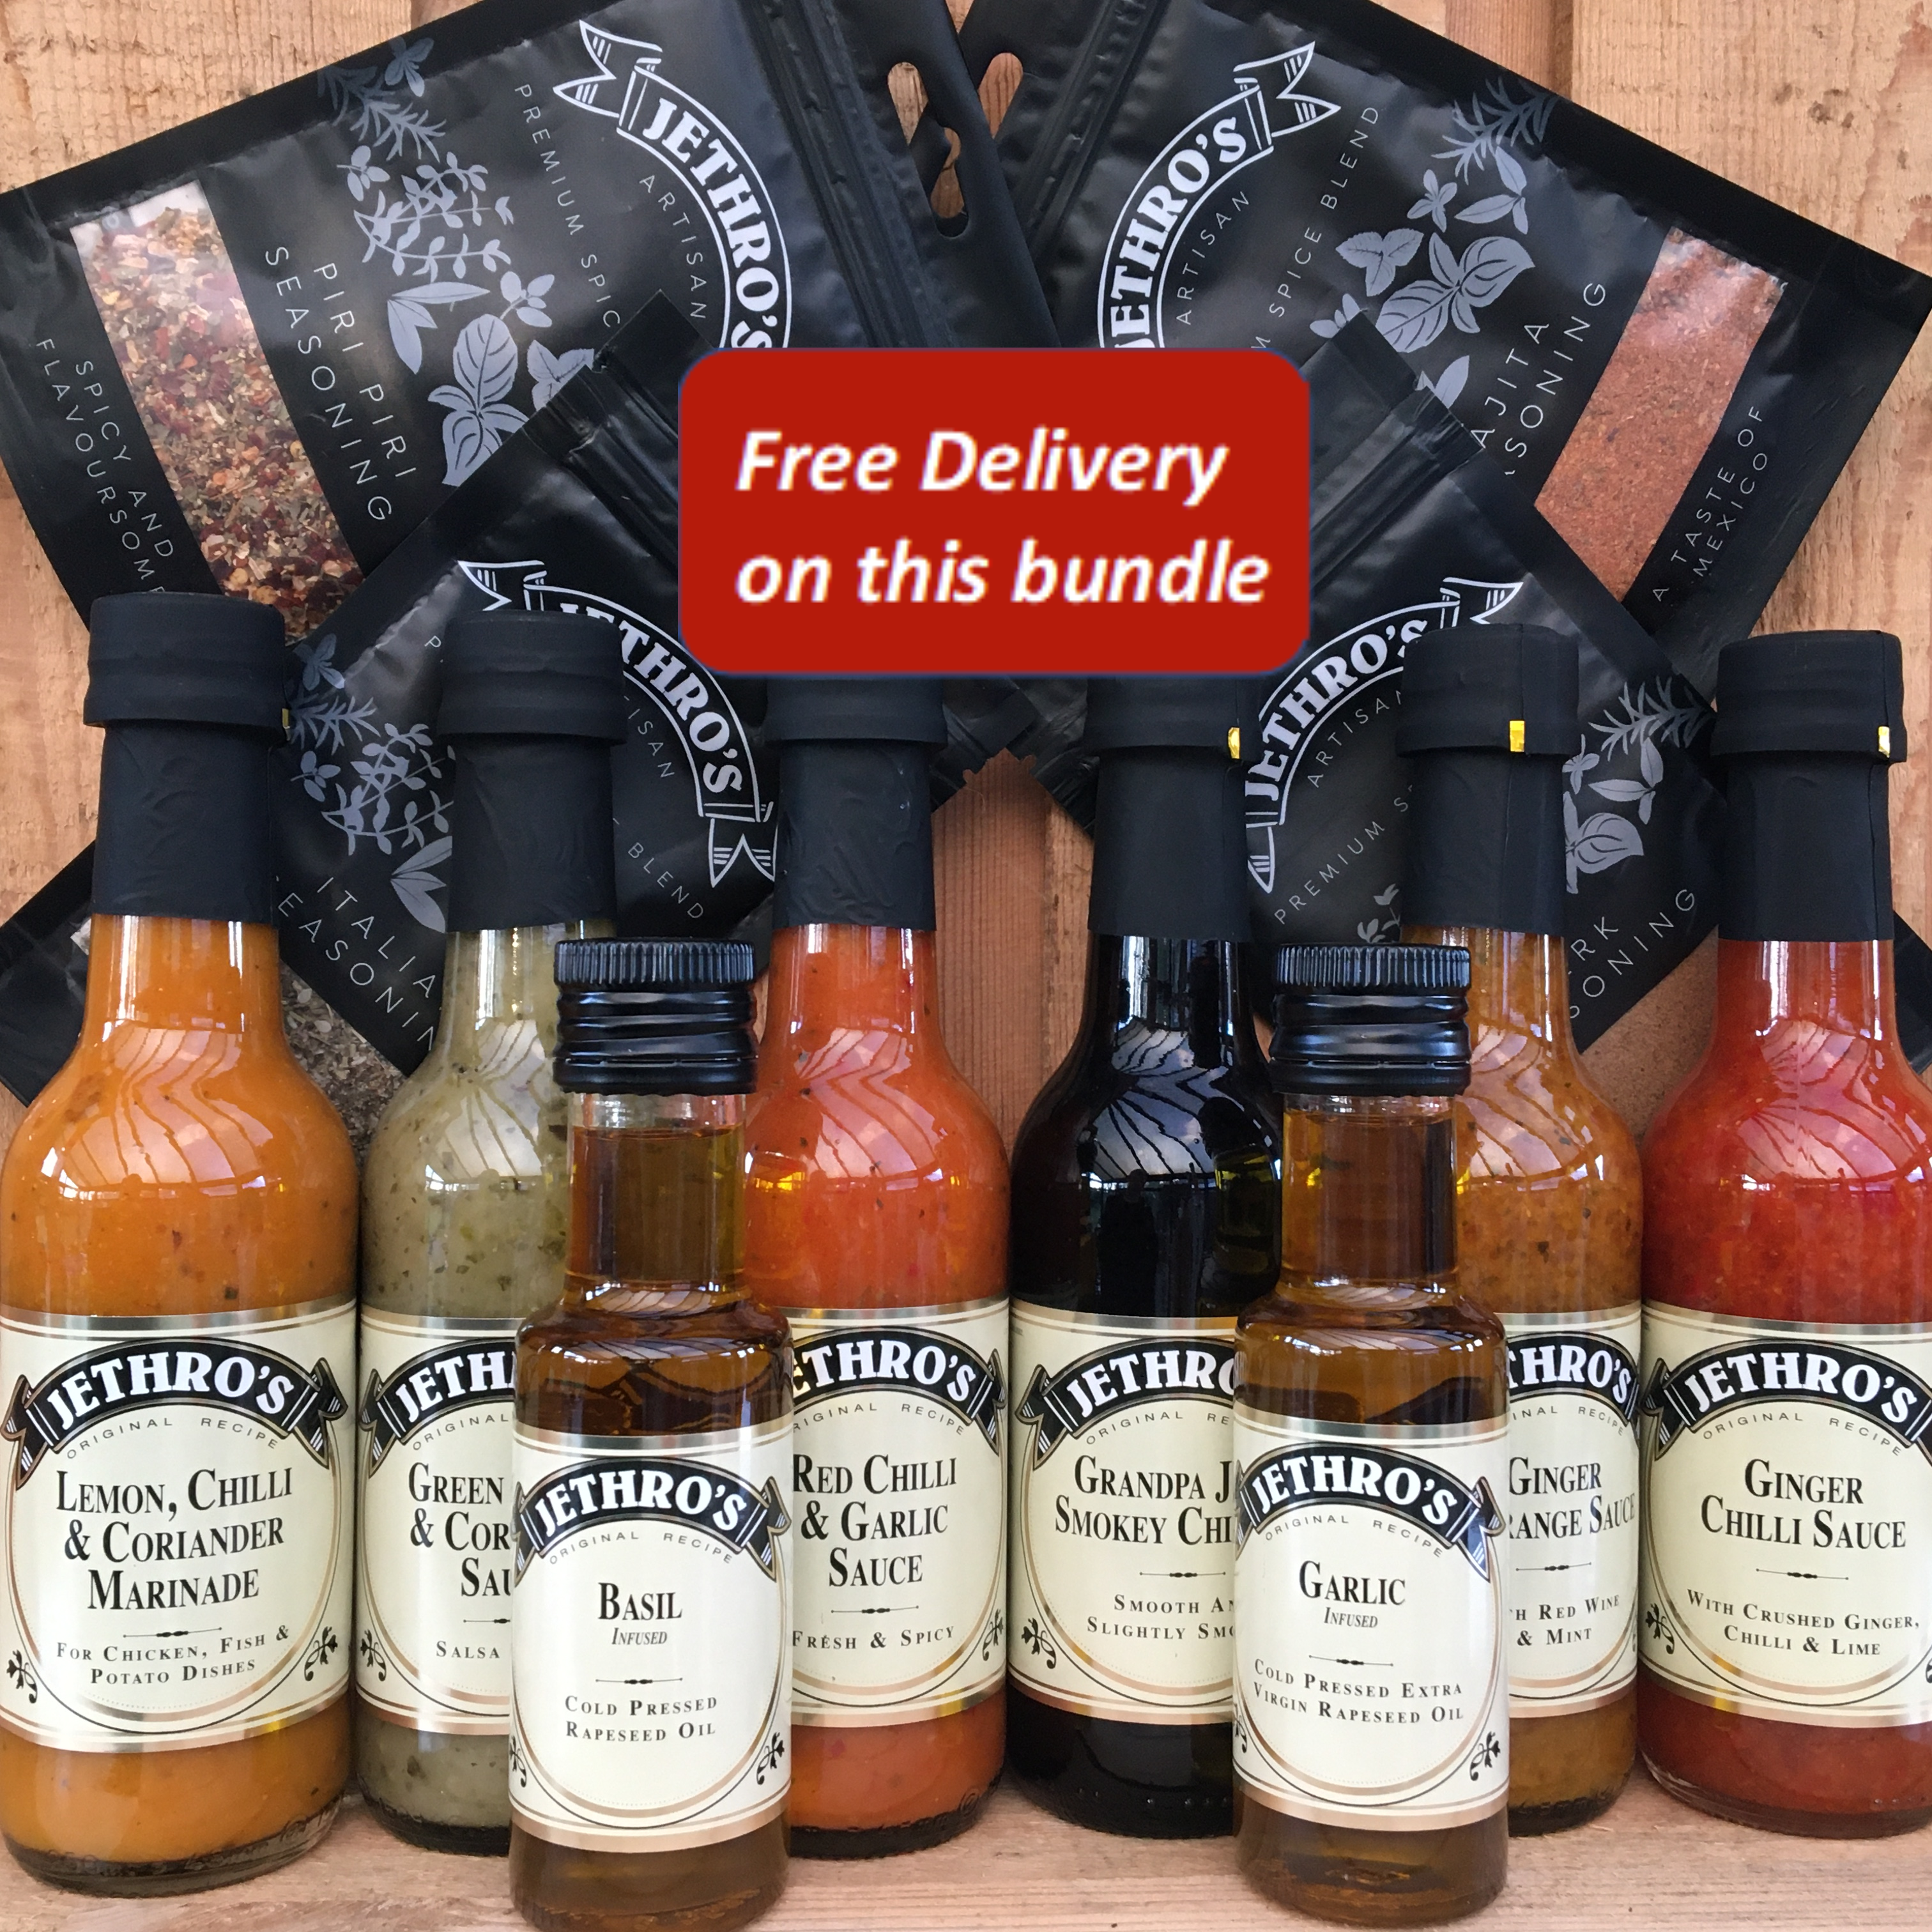 Bundle 2 with free delivery